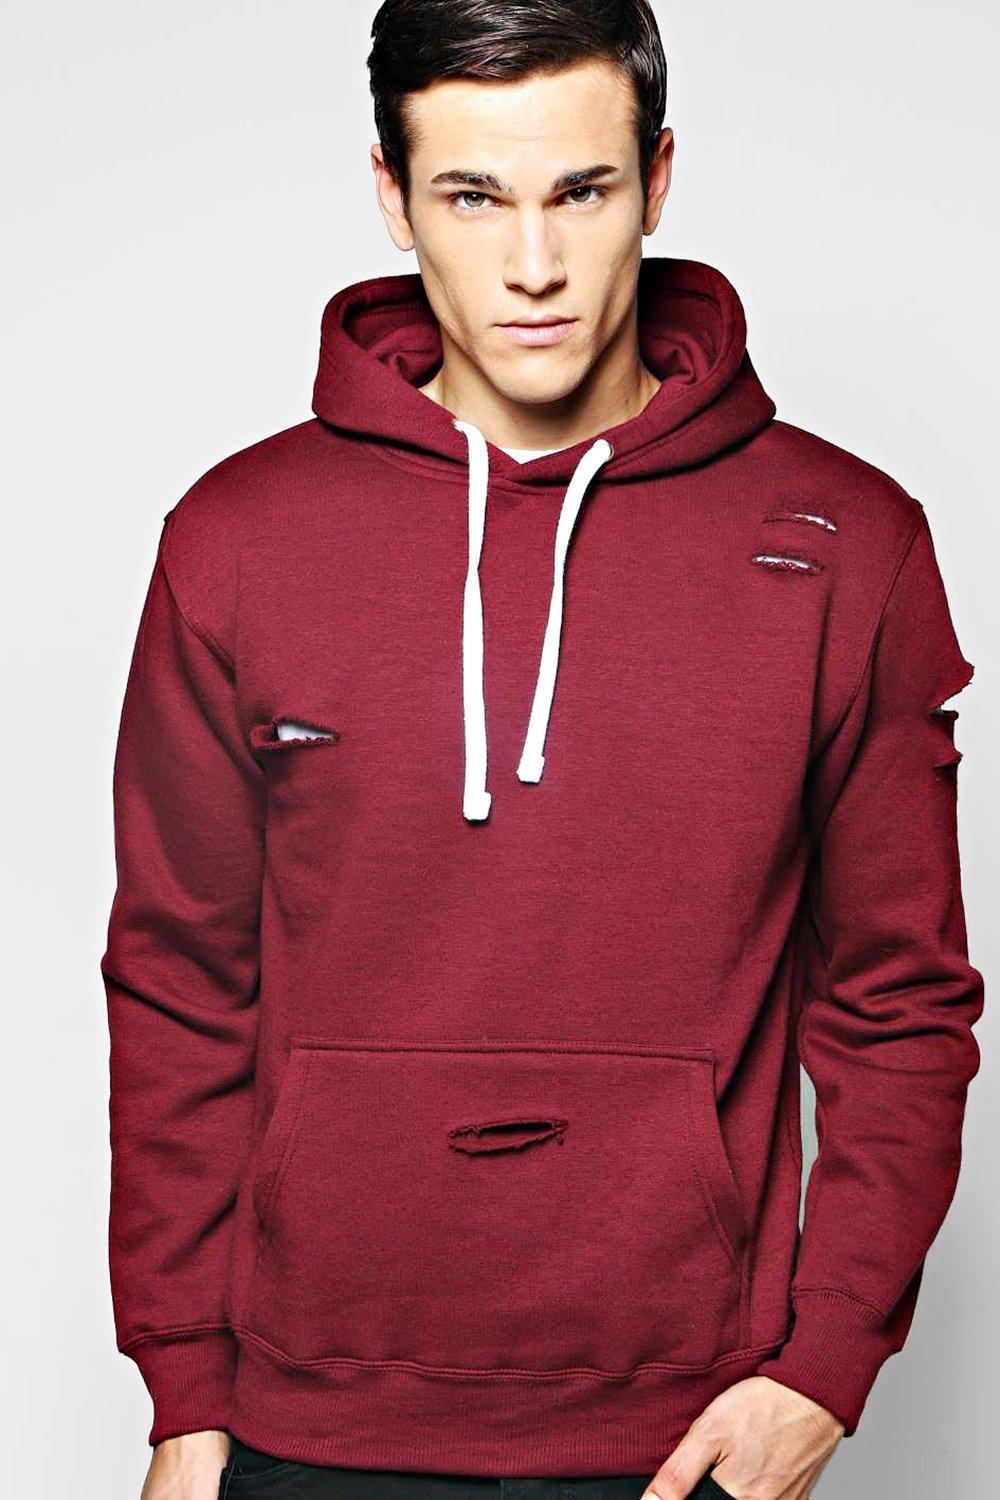 Distressed Over the Head Hoody